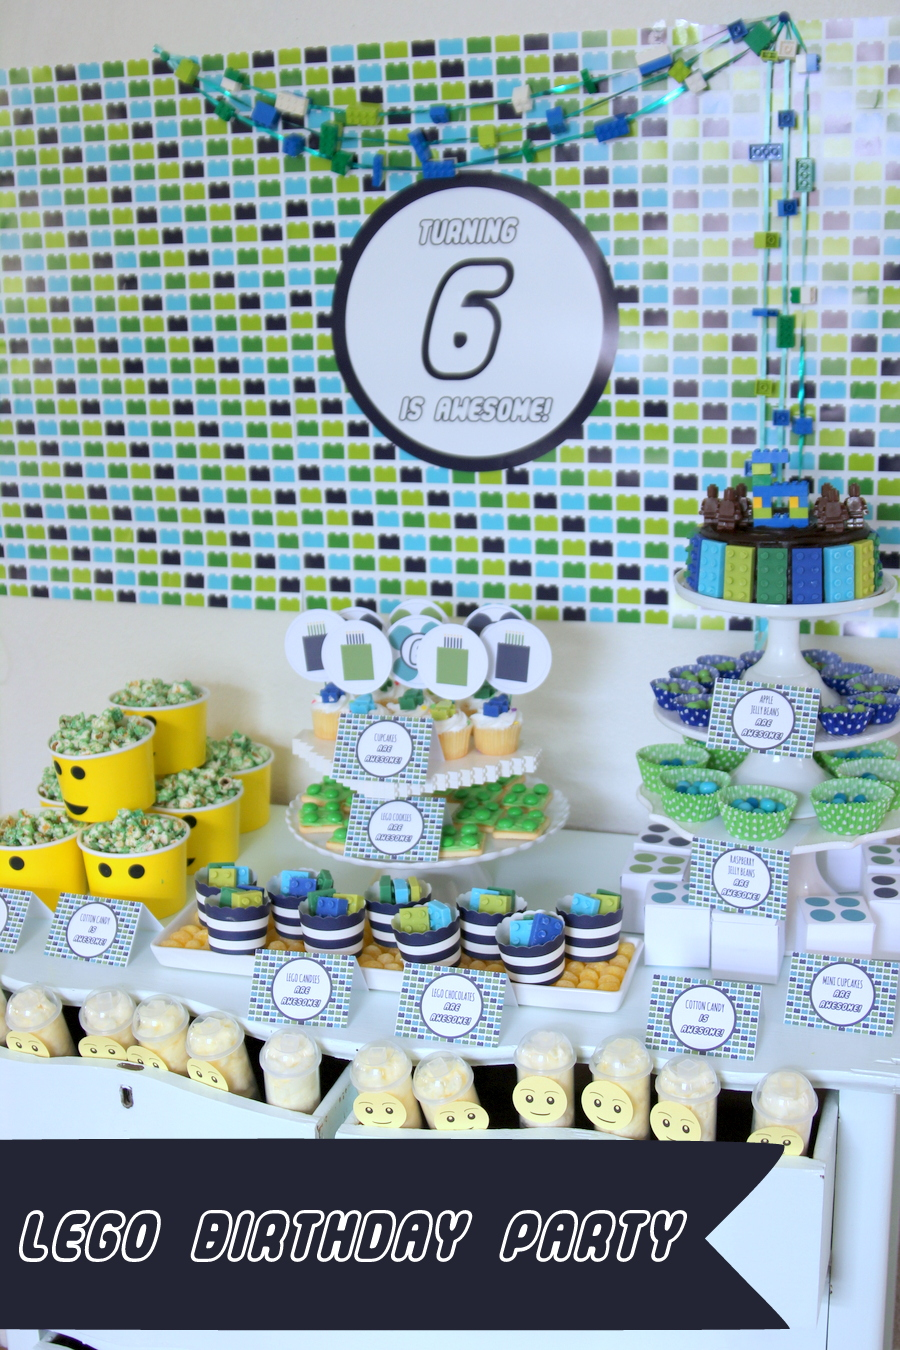 Lego birthday party- this party is full of simple DIY ideas for a Lego party!